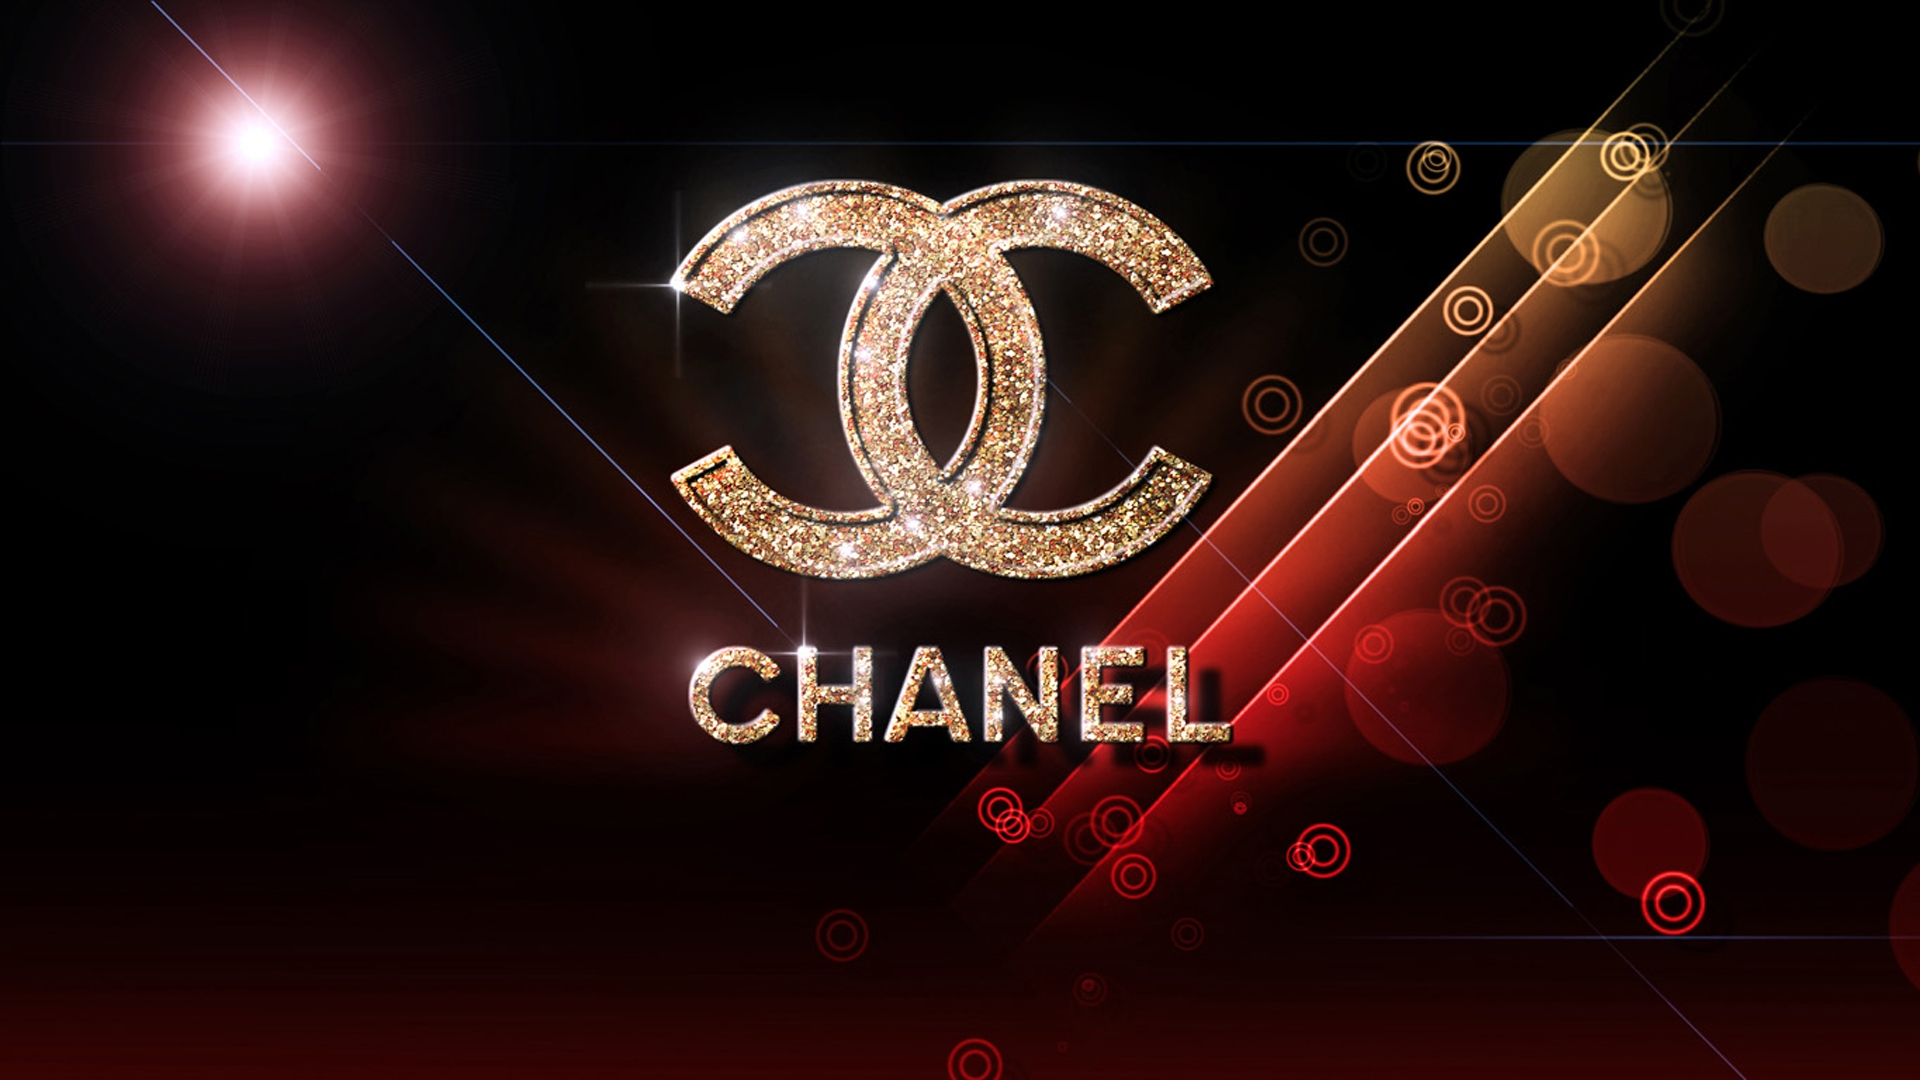 Download image Chanel Logo High Definition Wallpapers Hd PC Android 1920x1080